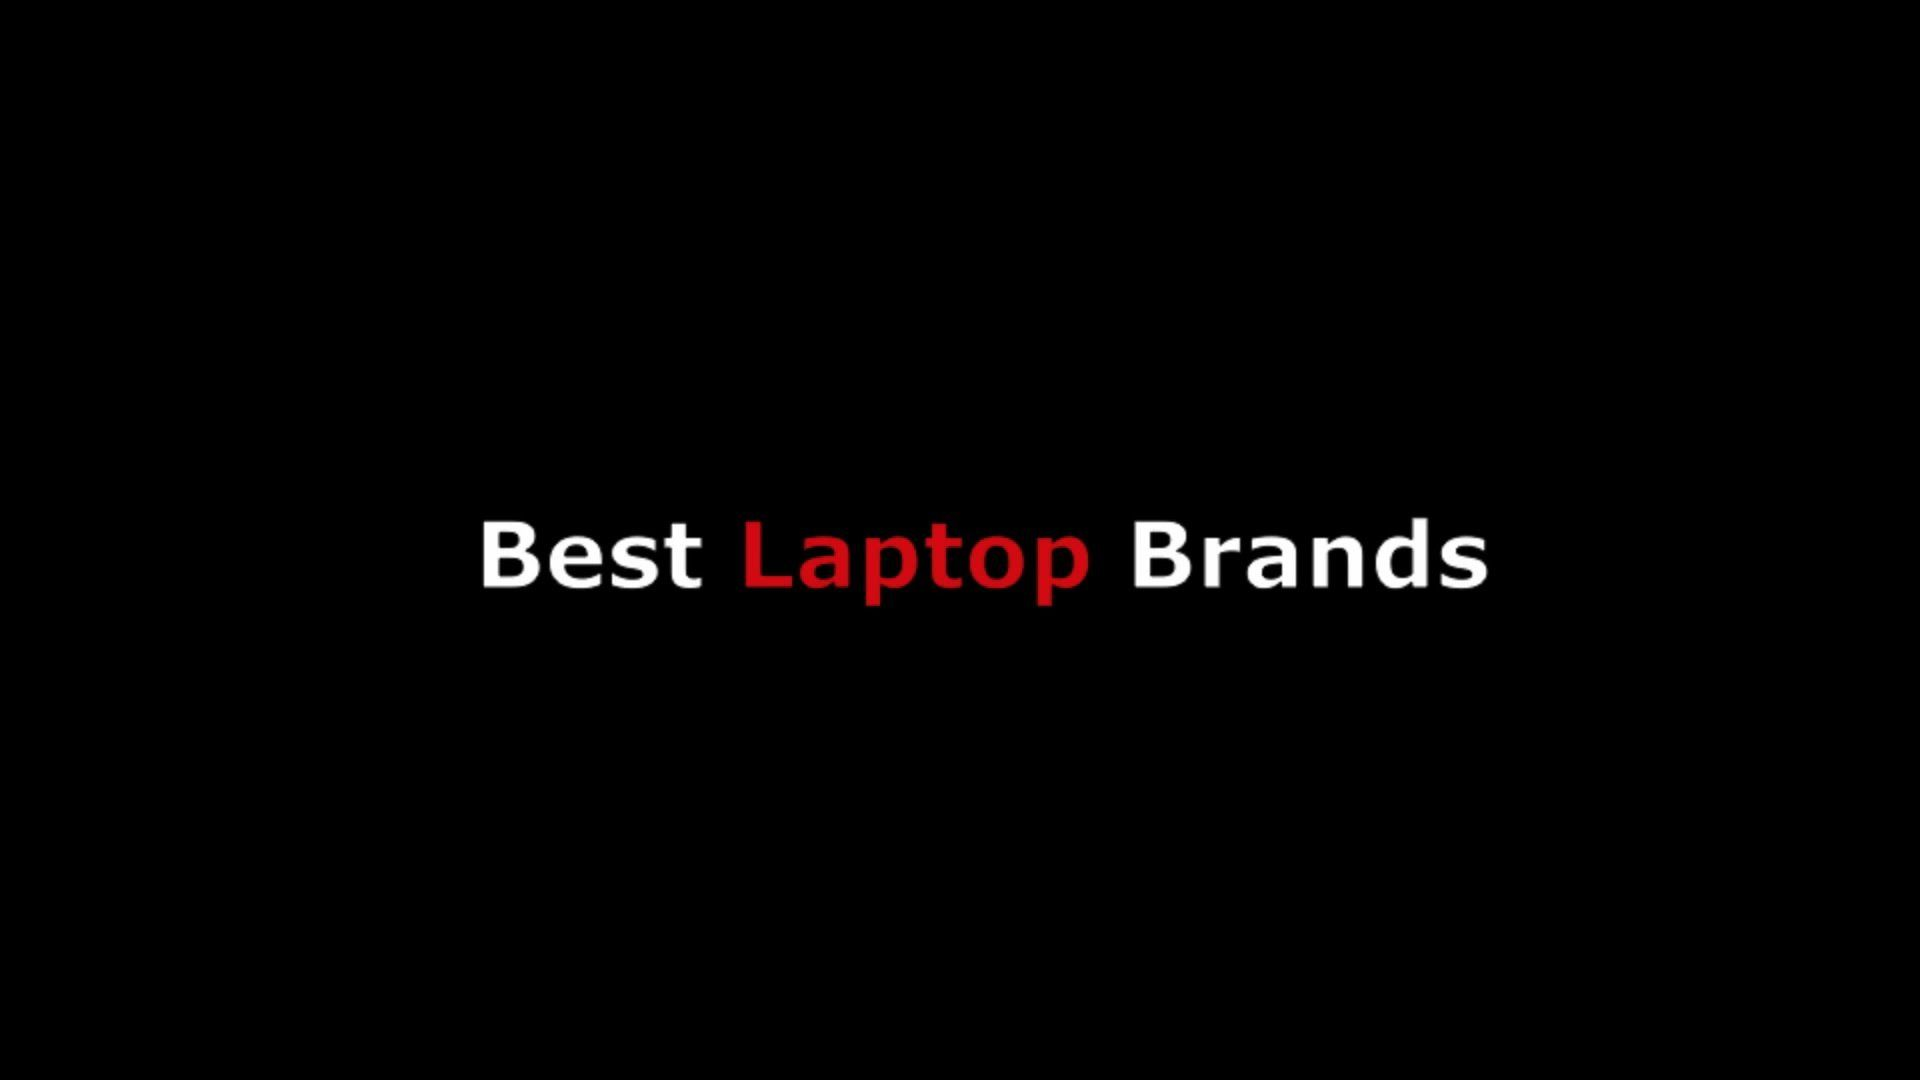 Best Laptop Brands From Notebook PC Computers For College or Gaming ...